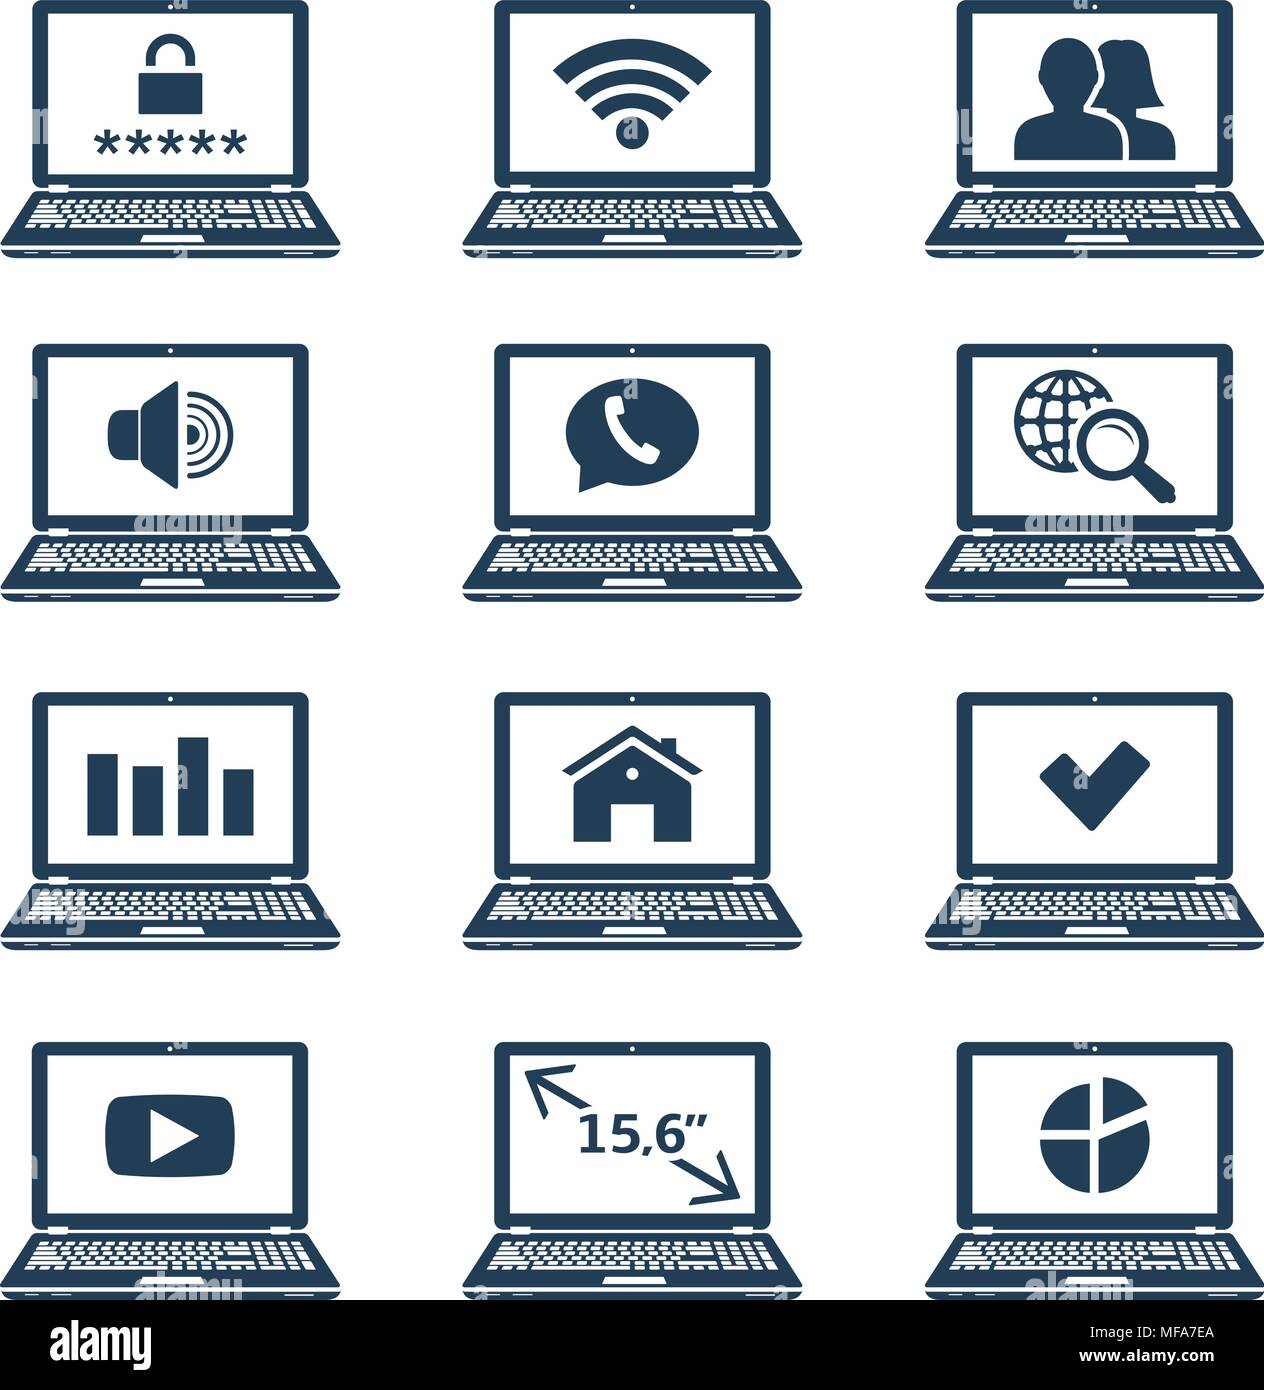 Laptop Icons With Signs And Symbols On Screen Vector Illustration